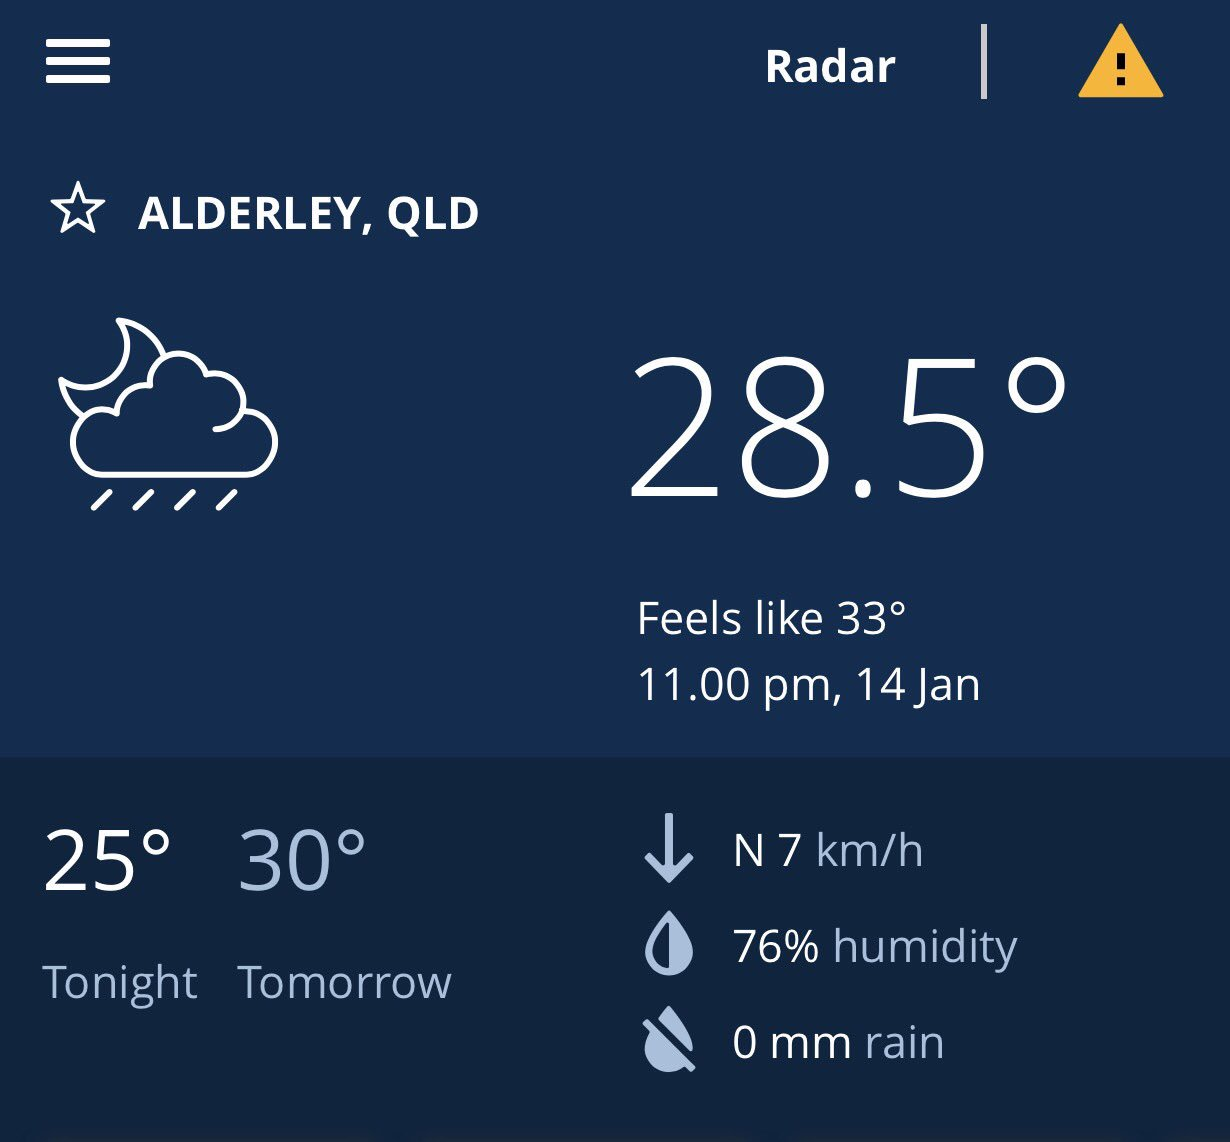 That can't be (just isn't) right... 28 degrees but feels like 33 degrees at 11 o'clock at night in #Brisbane #melting #heatwave #summer https://t.co/1YPrD28zlL